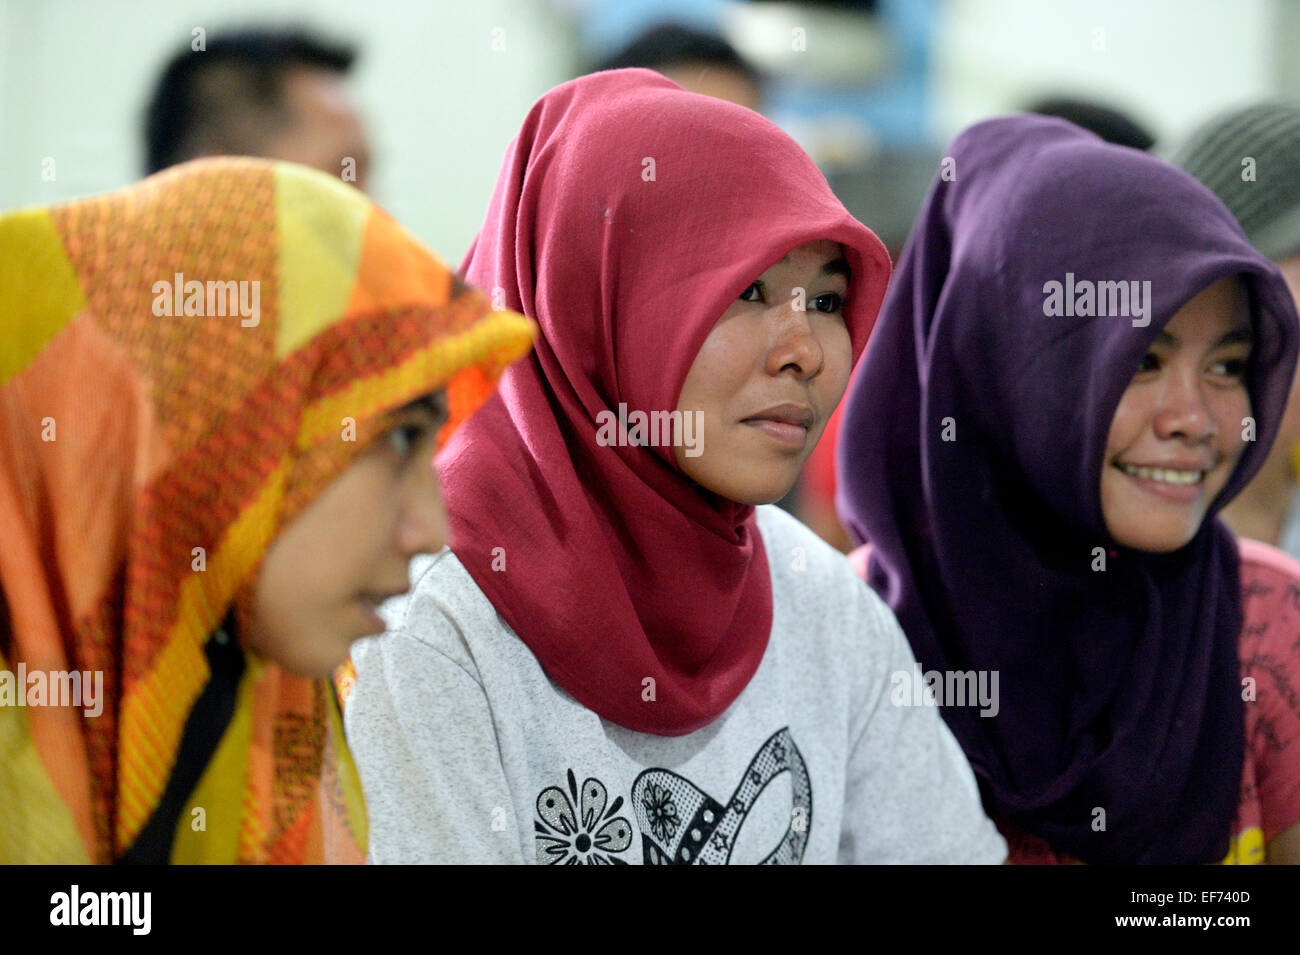 Young Muslim women with headscarves, Gampong Nusa, Aceh province, Indonesia - Stock Image